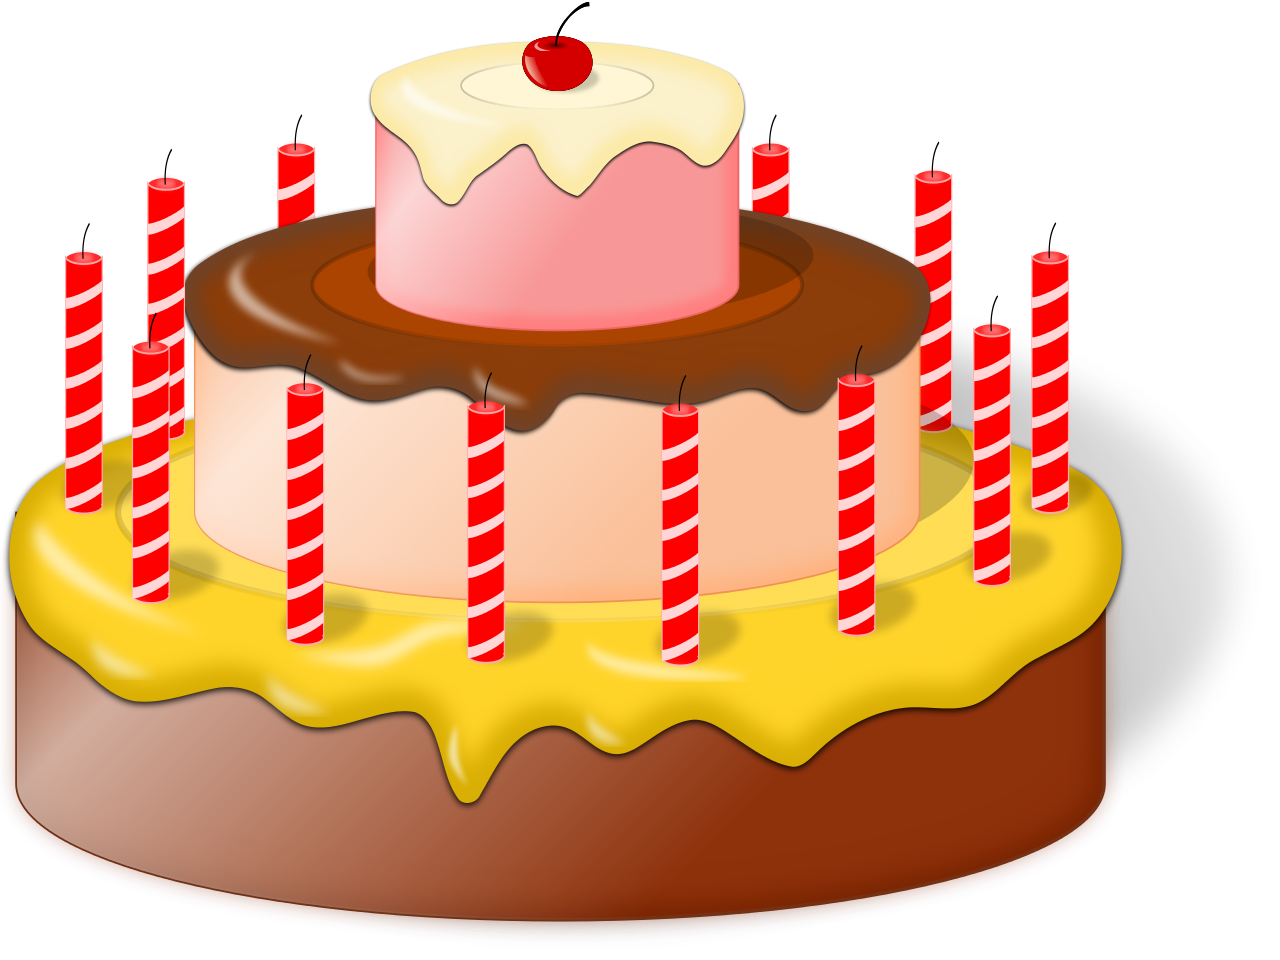 Cake svg #17, Download drawings